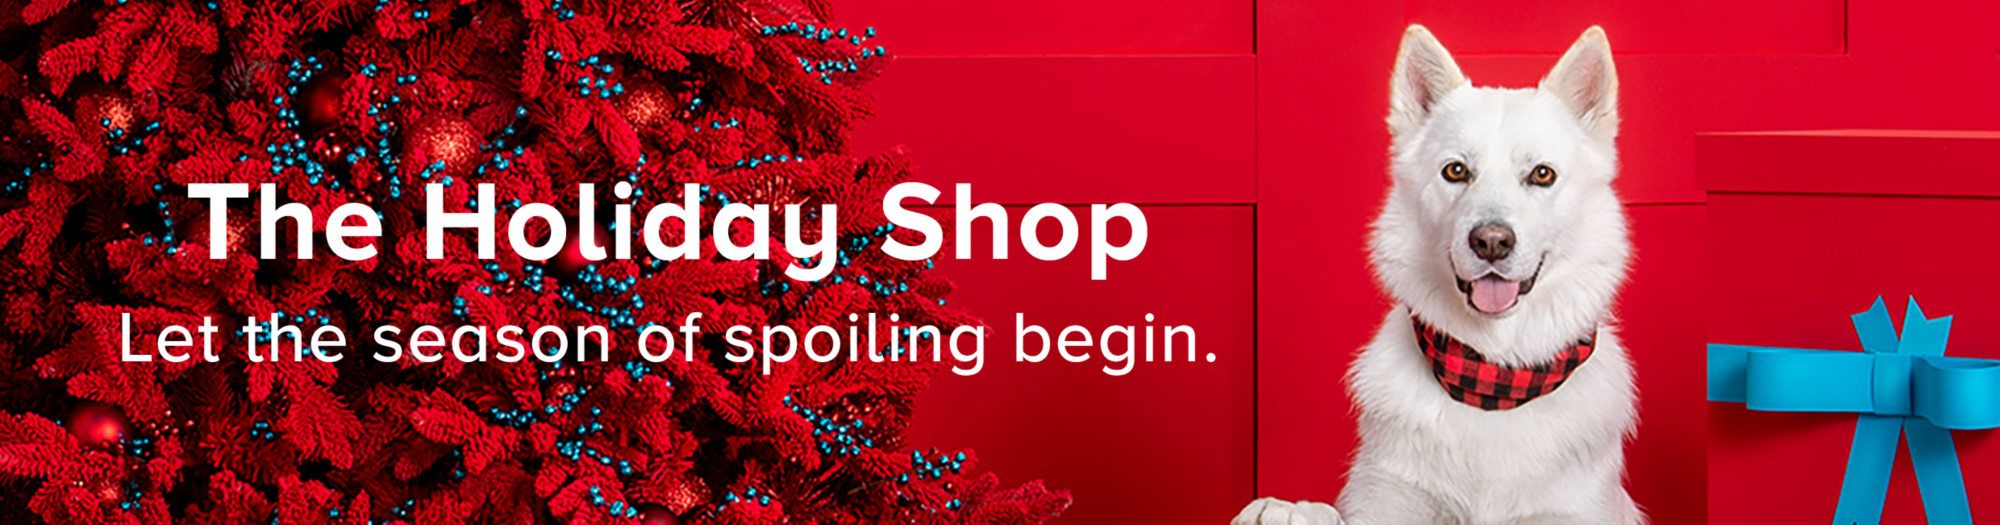 Holiday Shop Banner